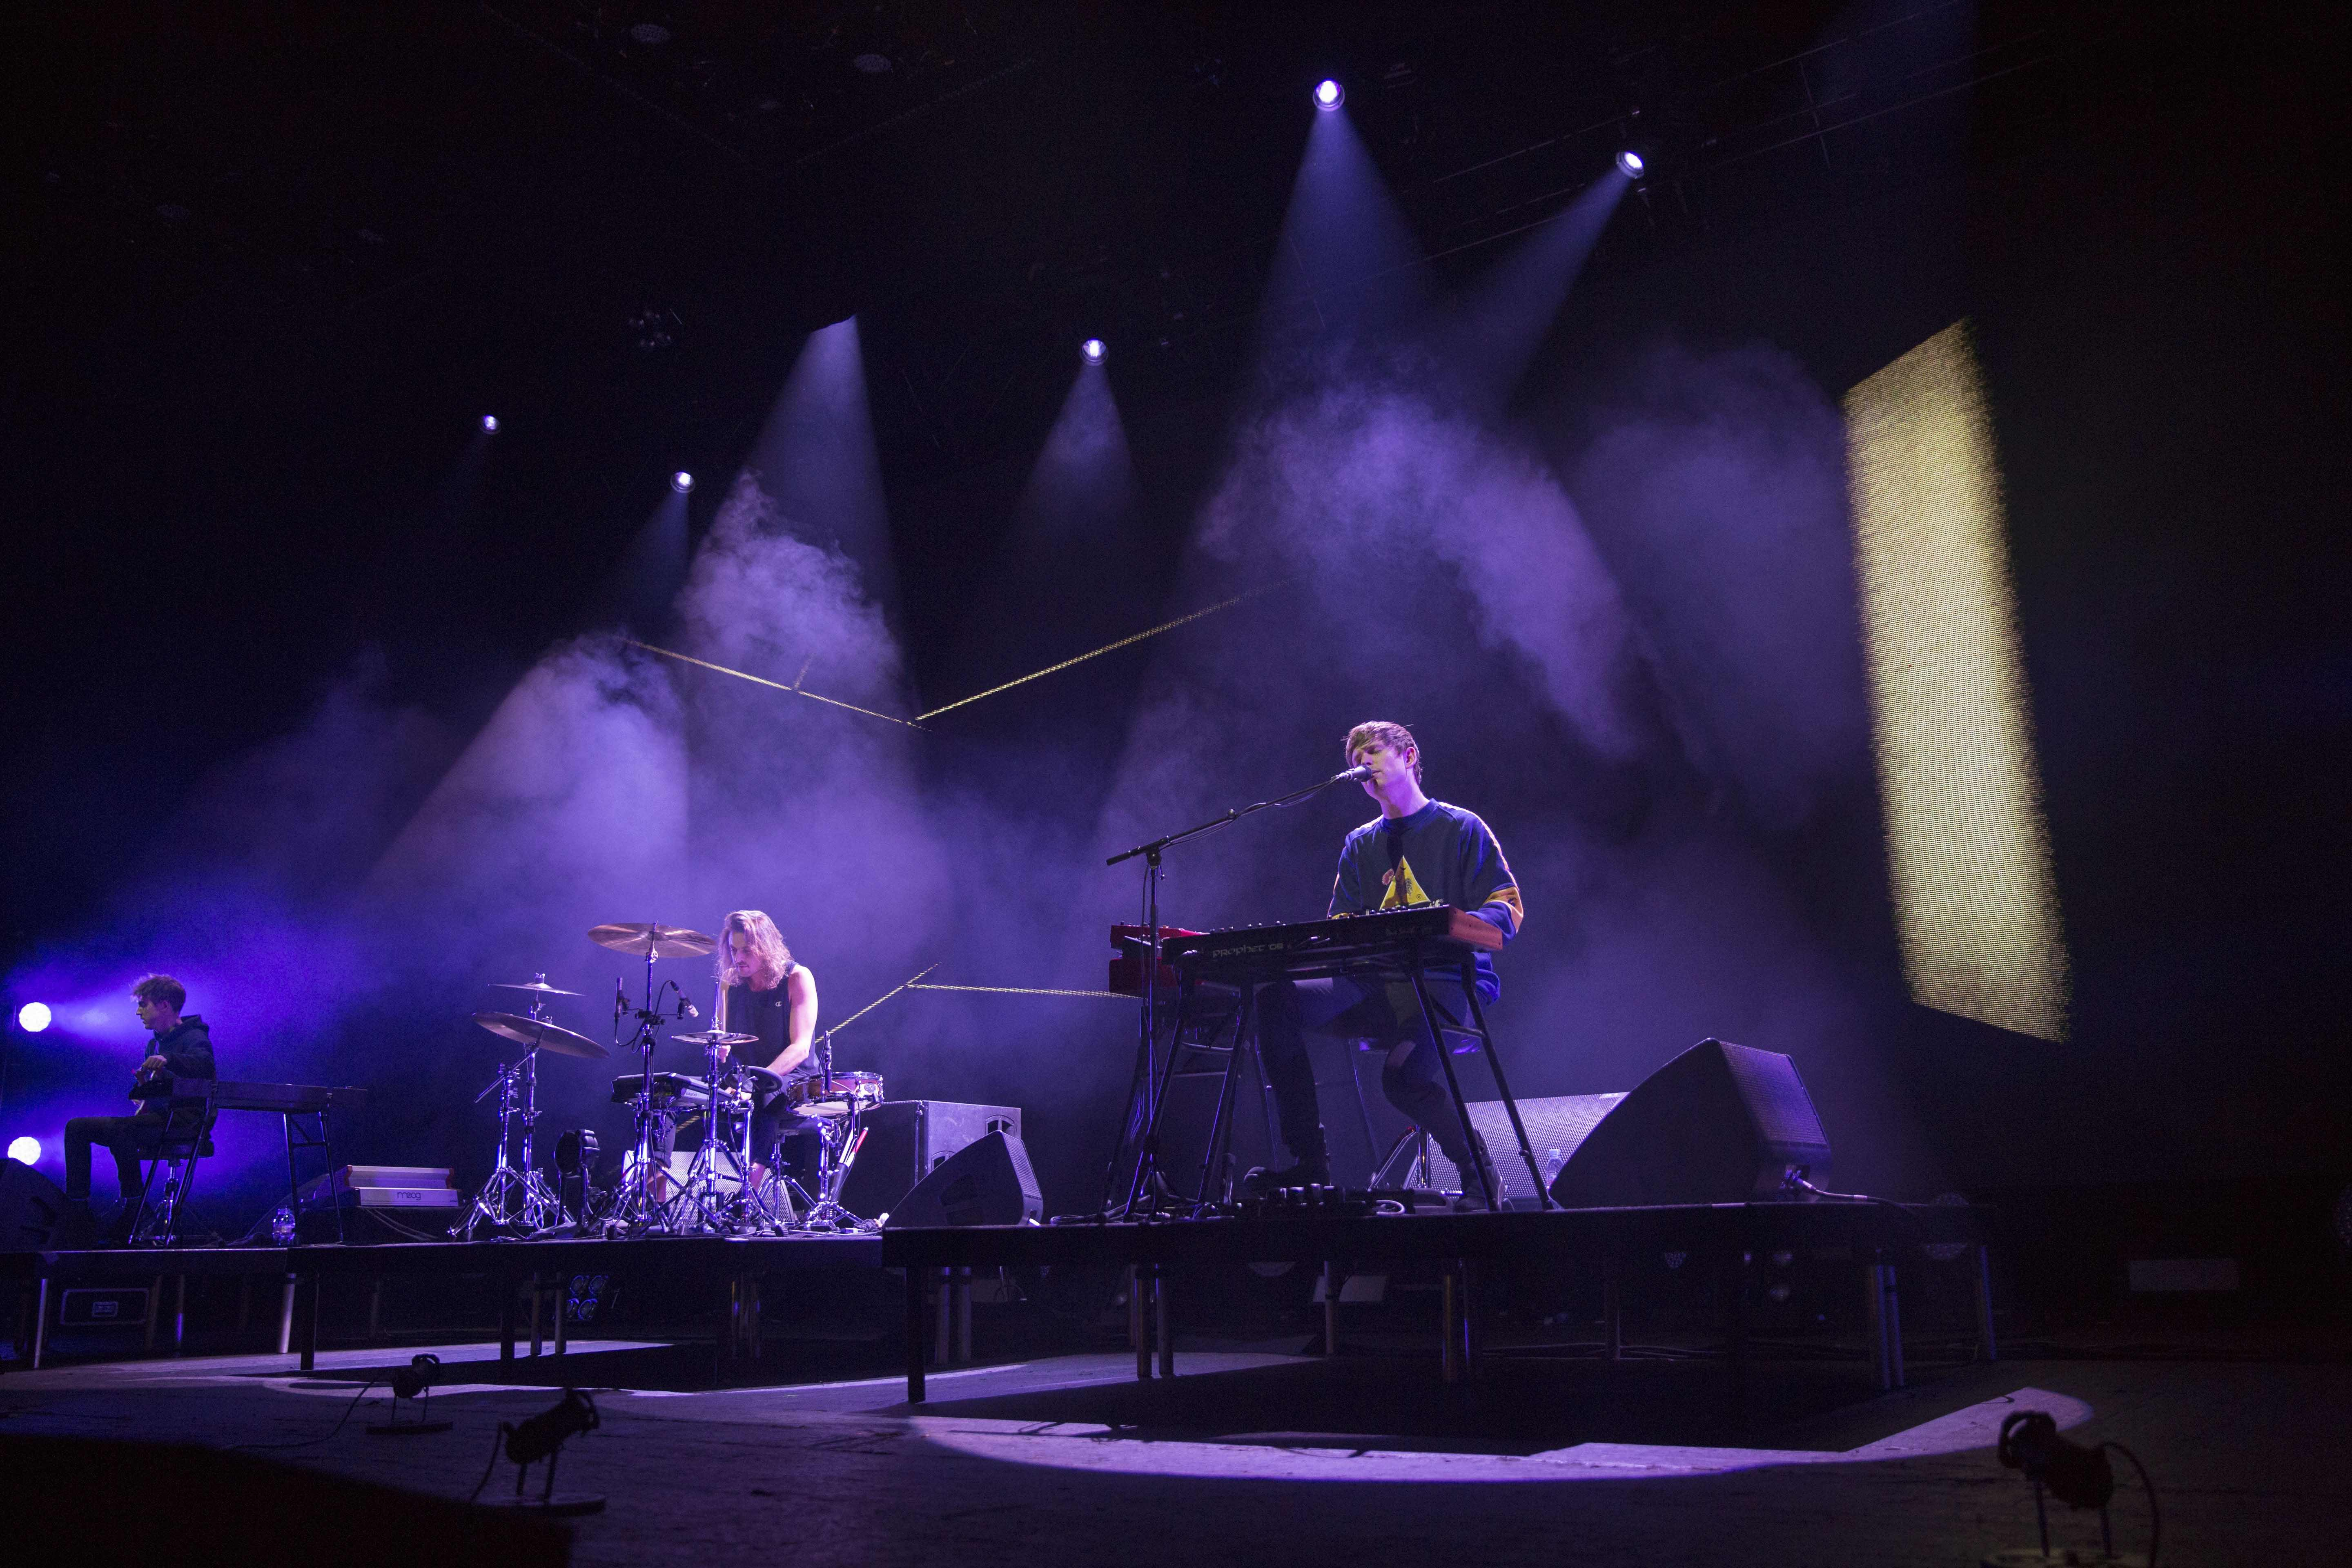 Avolites Quartz console powers lighting for Mercury Prize winner and Grammy nominee James Blake